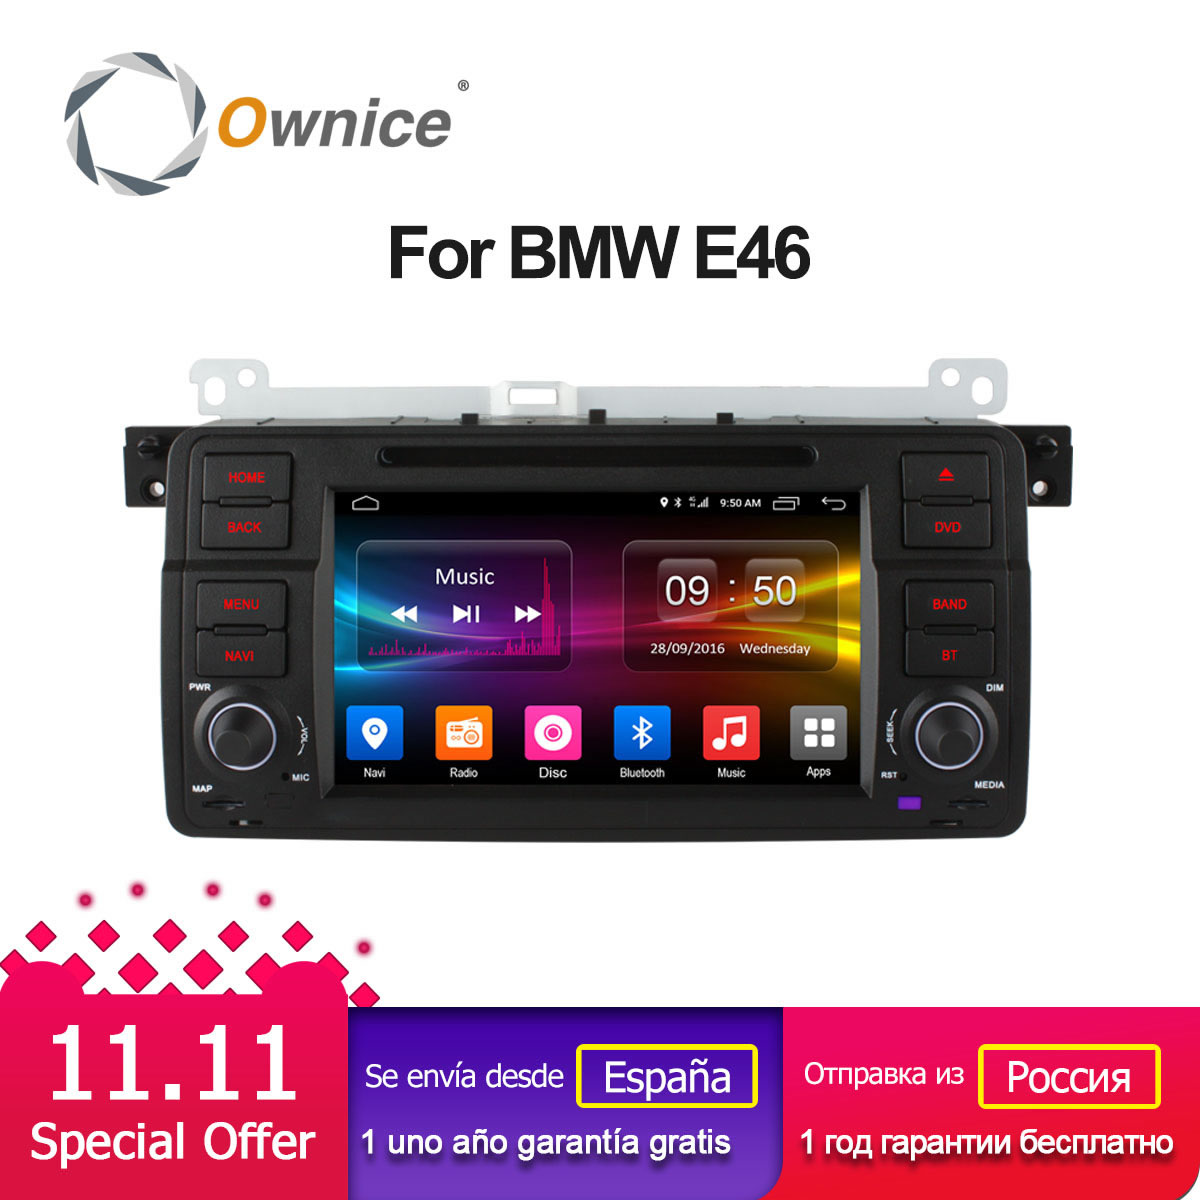 Ownice C500 Android 6.0 Octa 8 Core for bmw E46 M3 car dvd gps navi wifi 4G BT Radio RDS 2GB RAM 32GB ROM support DAB+ TPMS ownice c500 g10 octa core 2gb ram 32g rom android car dvd 8 1 gps for mazda 6 summit 2009 2015 wifi 4g lte radio dab dvr